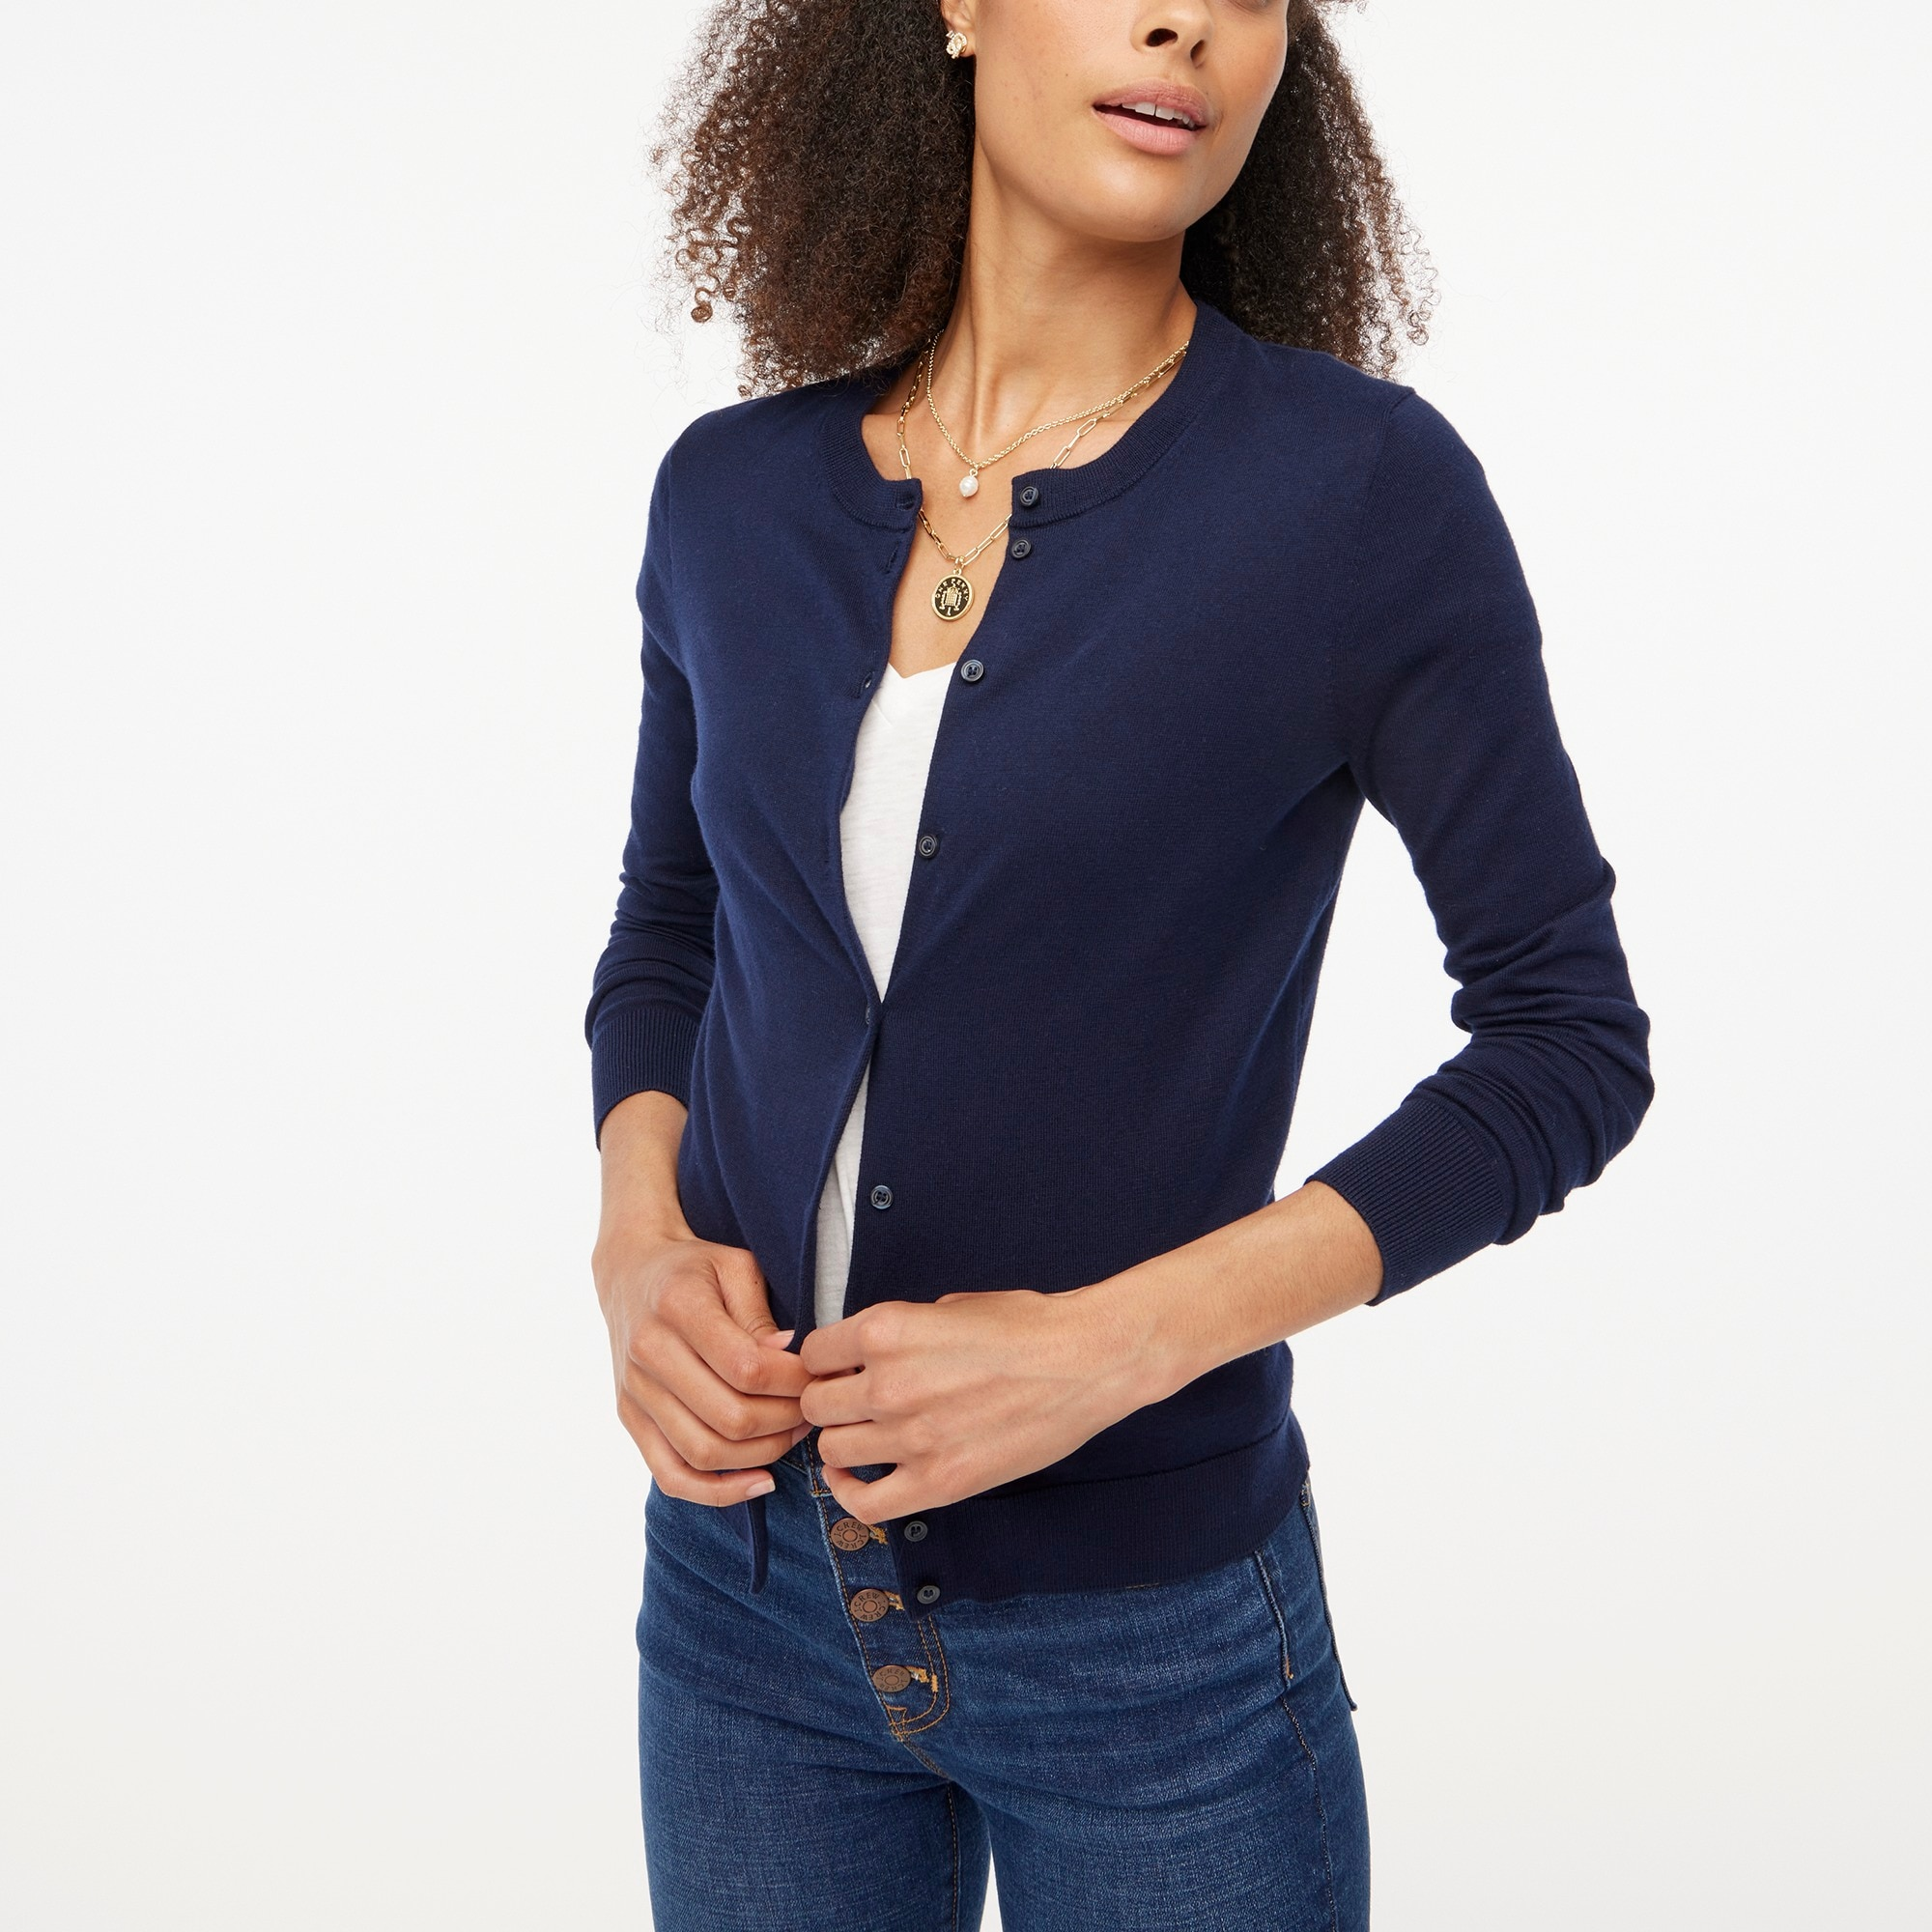 factory womens Cotton Caryn cardigan sweater